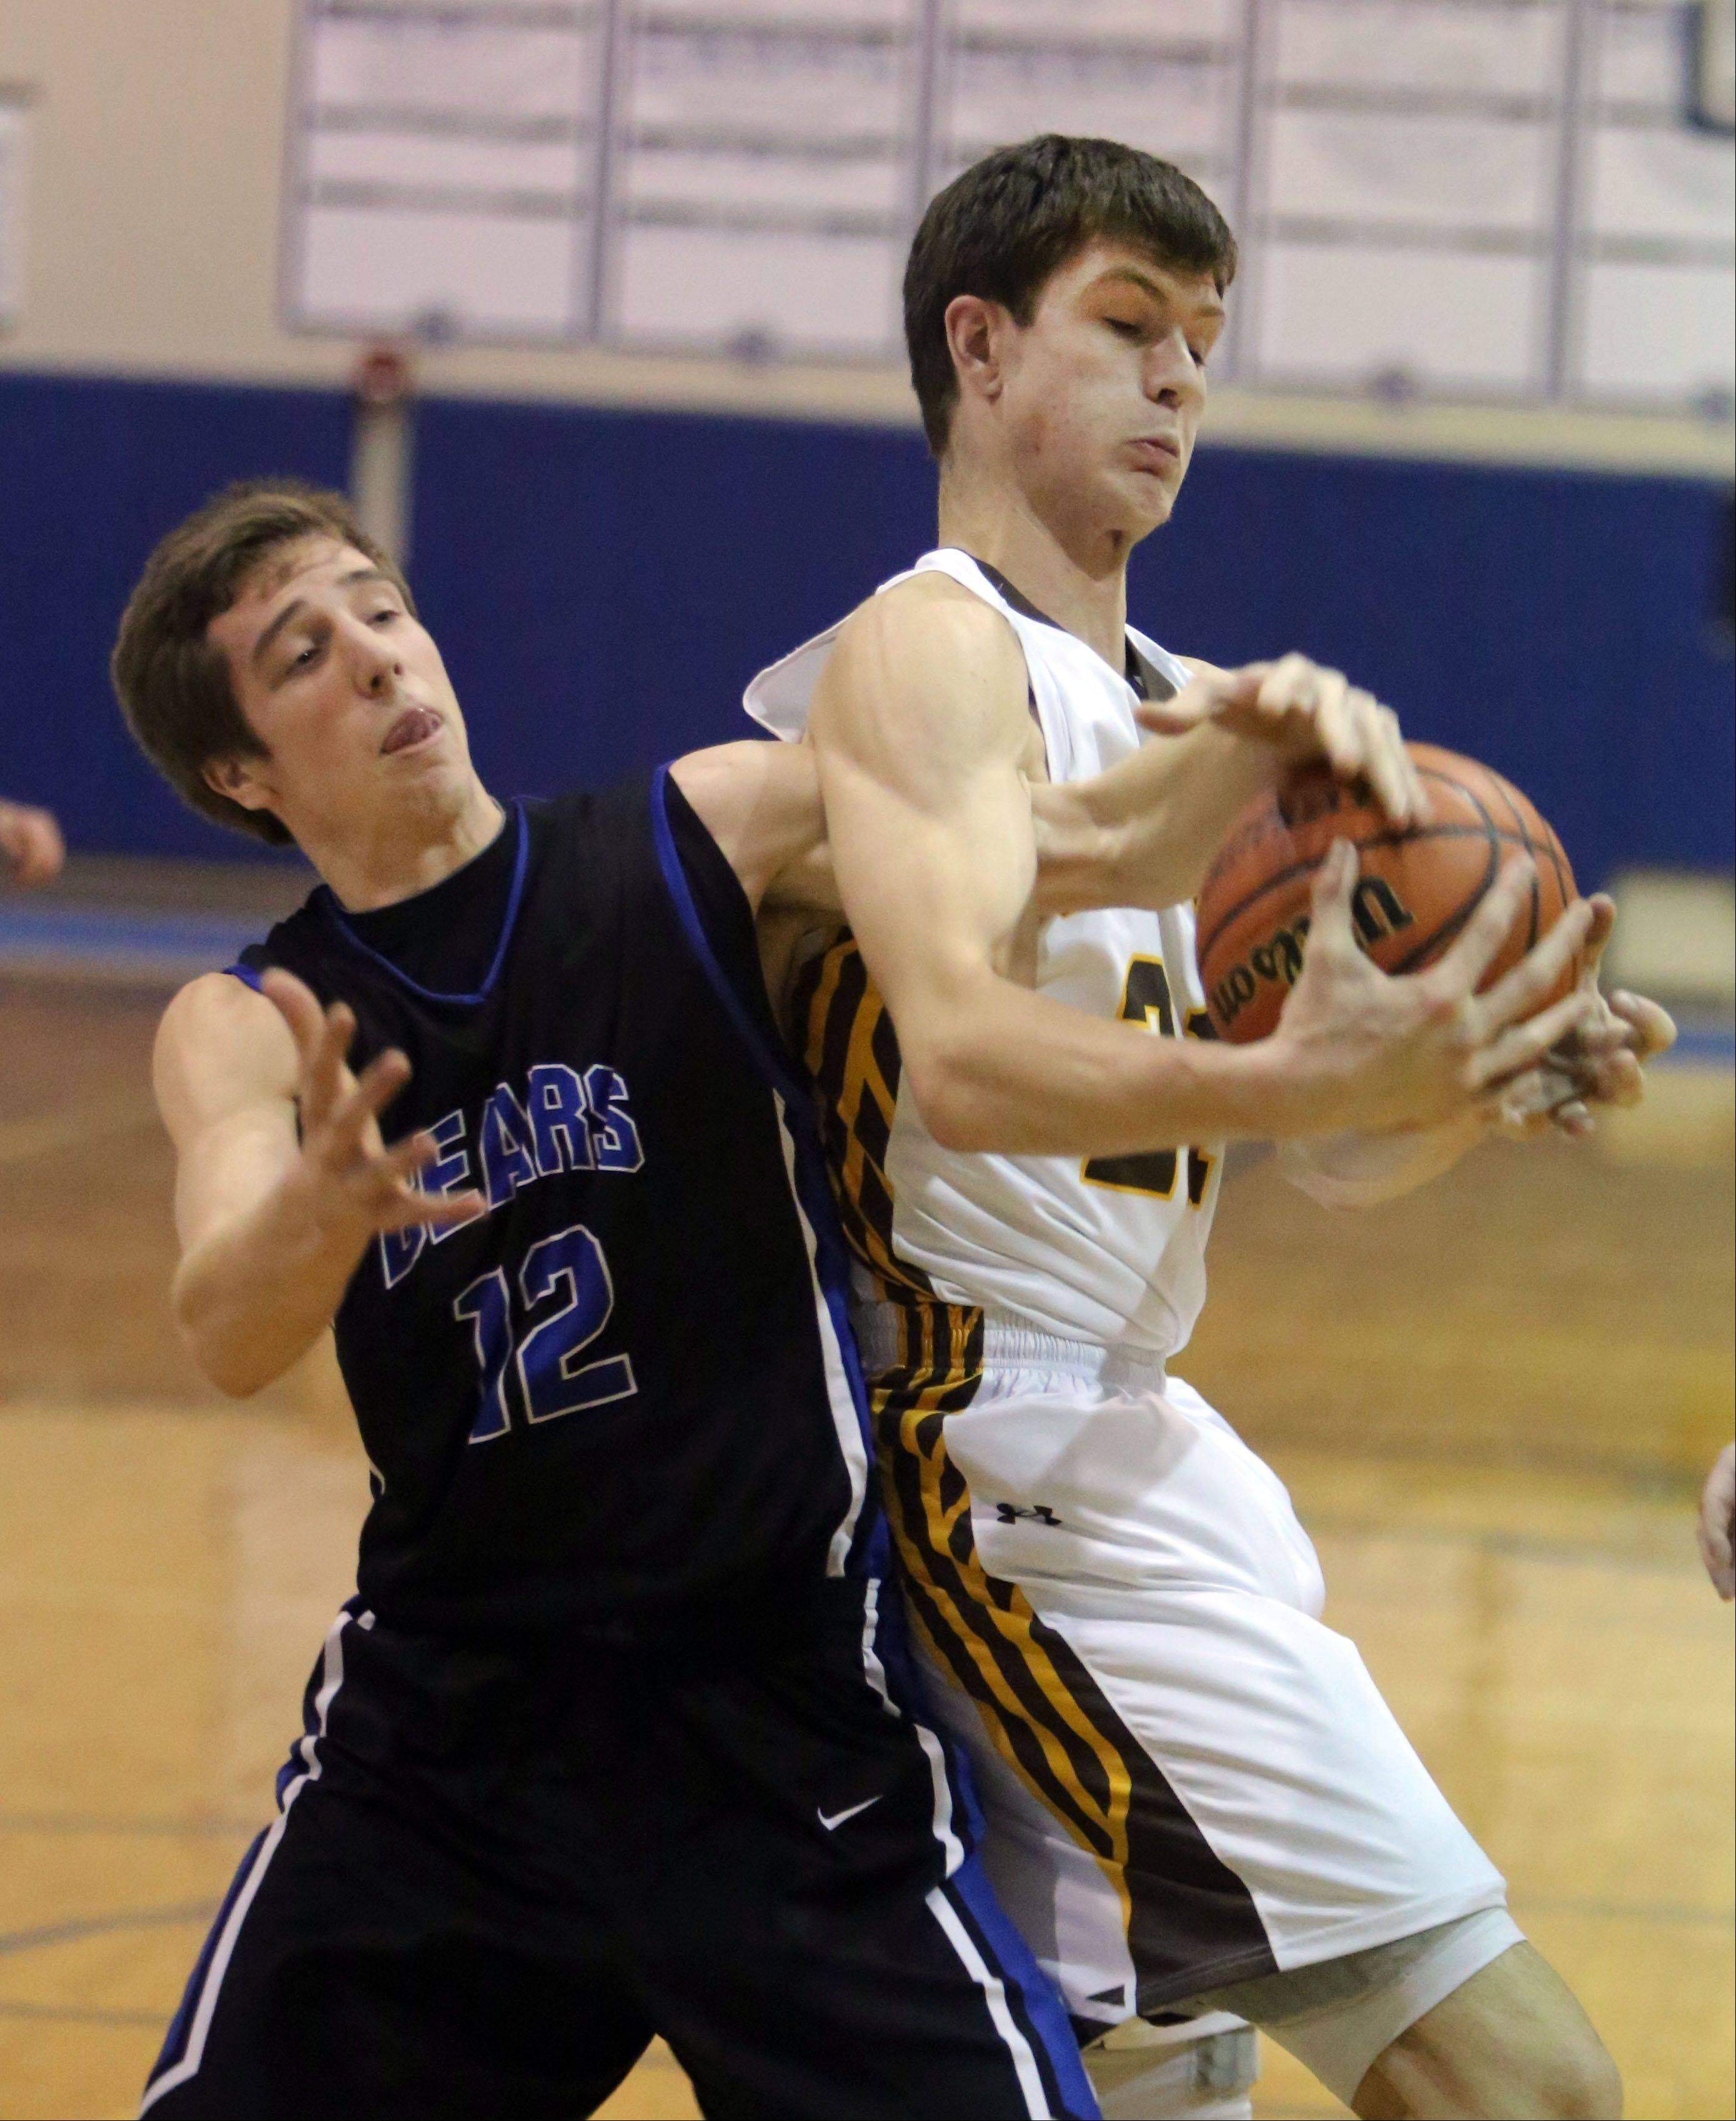 Lake Zurich's Corey Helgeson, left, and Carmel's John George fight for a rebound during the 2nd annual Lake Zurich Martin Luther King Classic on Monday.